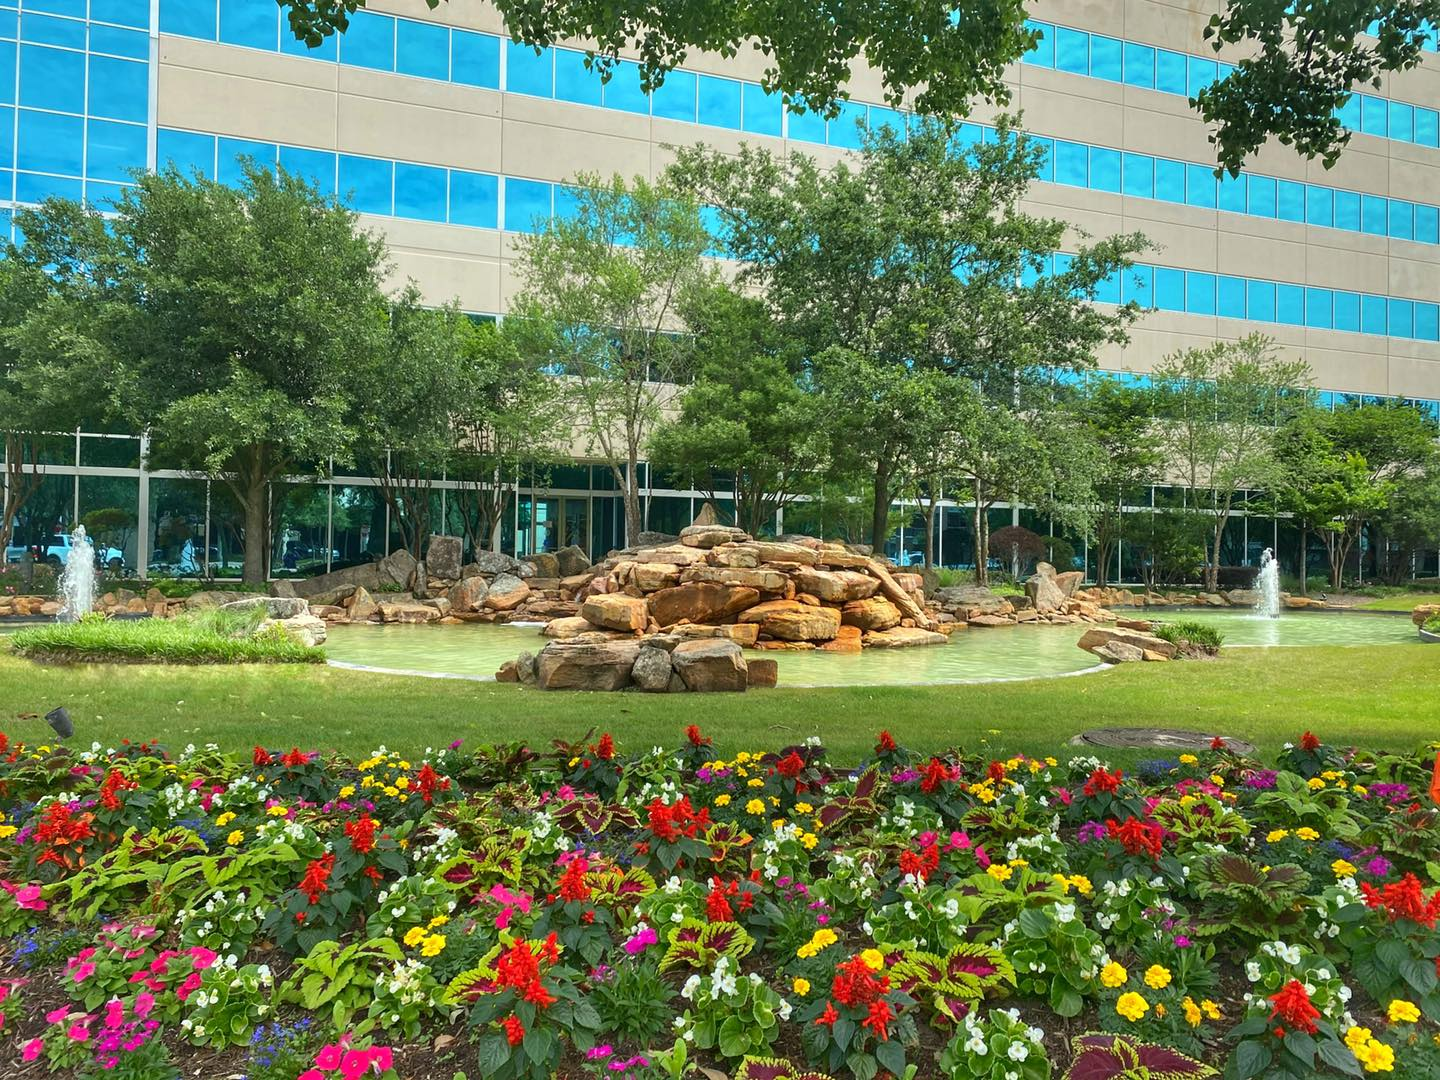 What do commercial landscaping customers expect to get out of a landscape maintenance provider?